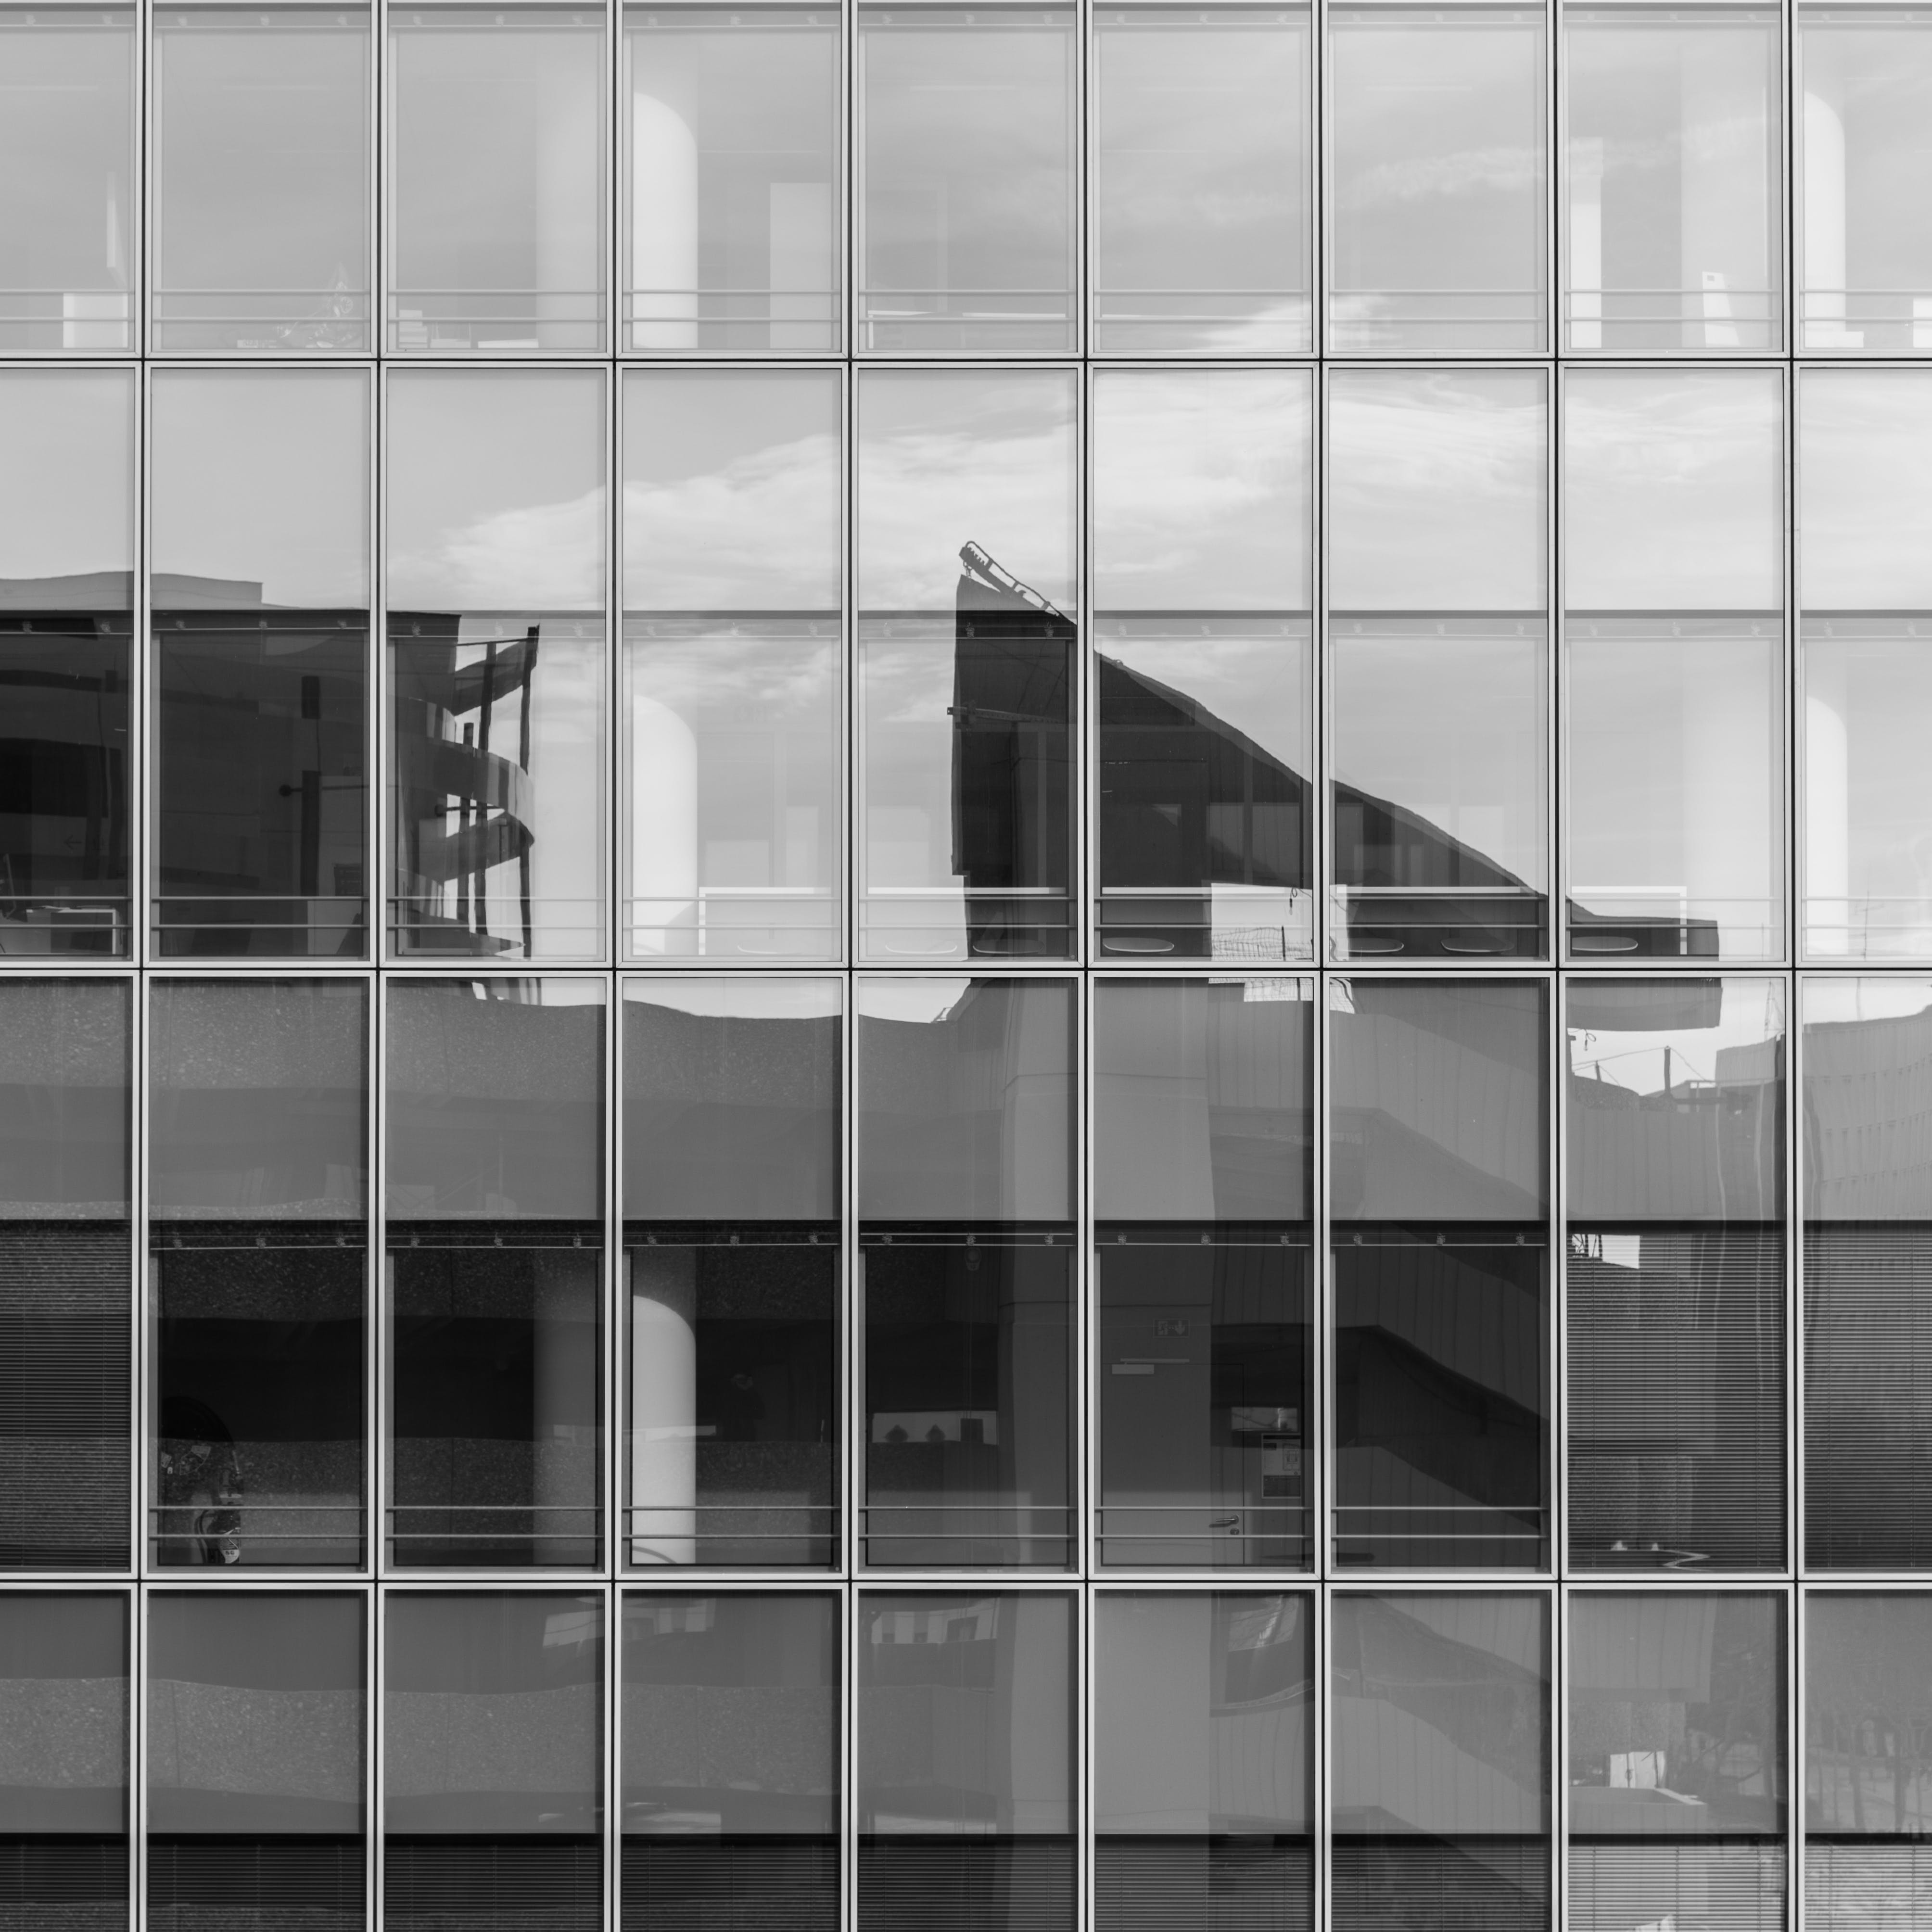 Free stock photo of architectural design, black and white, build, building